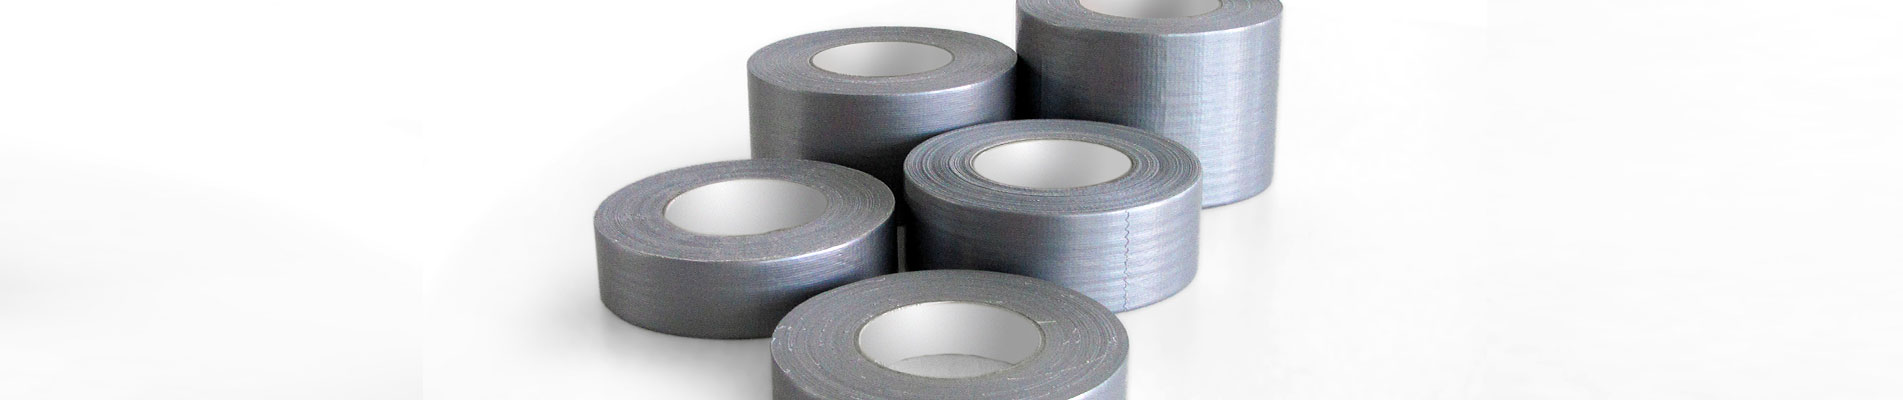 MetaLine masking / adhesive tapes